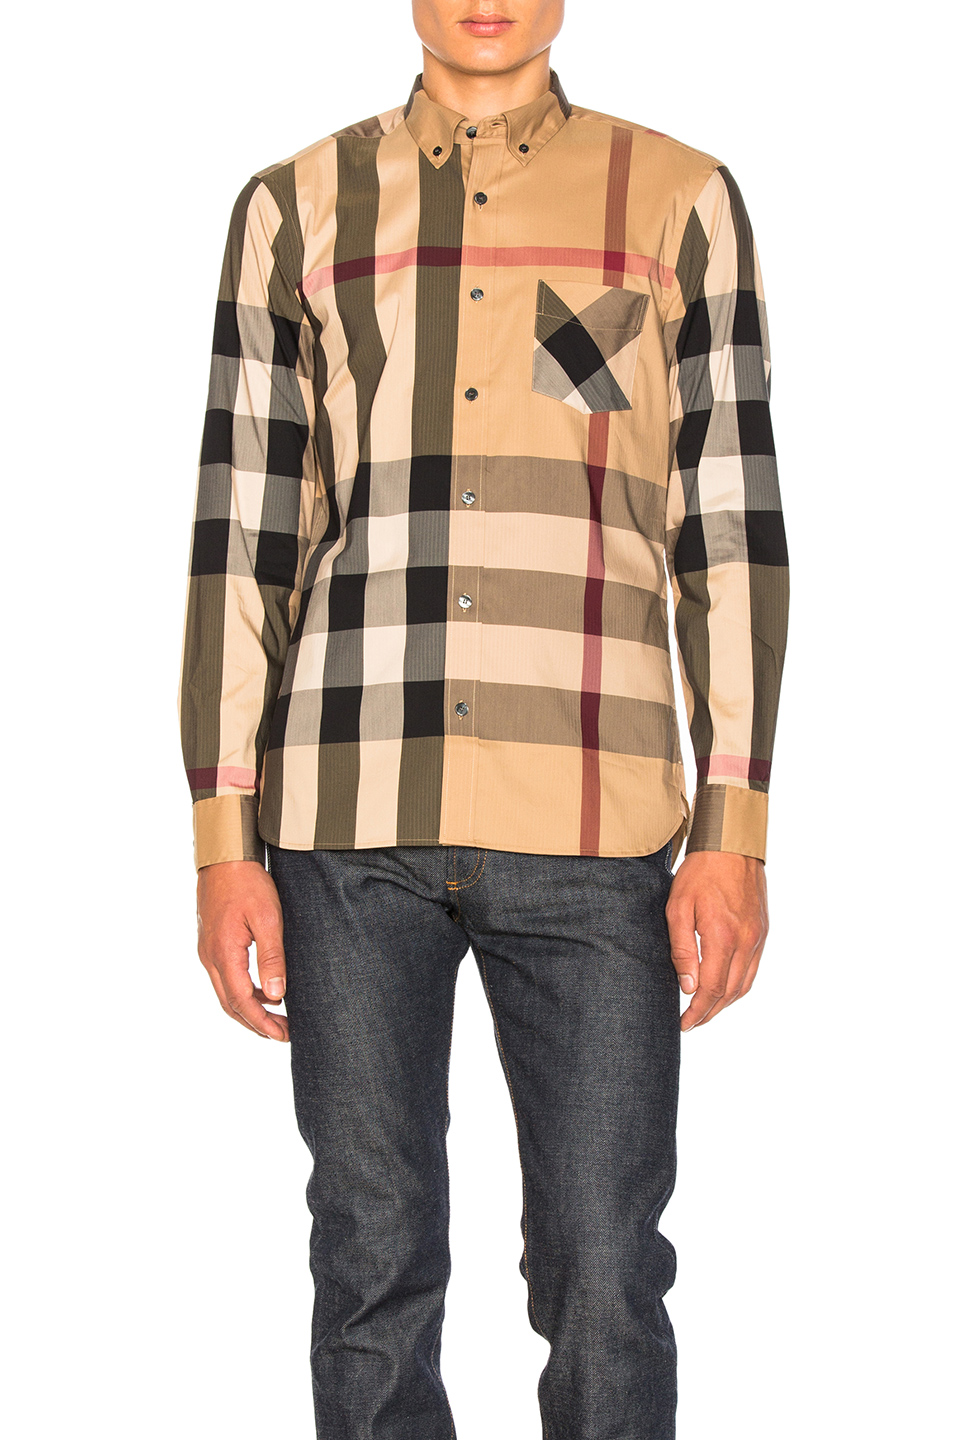 Burberry Herringbone Stretch Giant Check Shirt in Checkered & Plaid,Neutrals